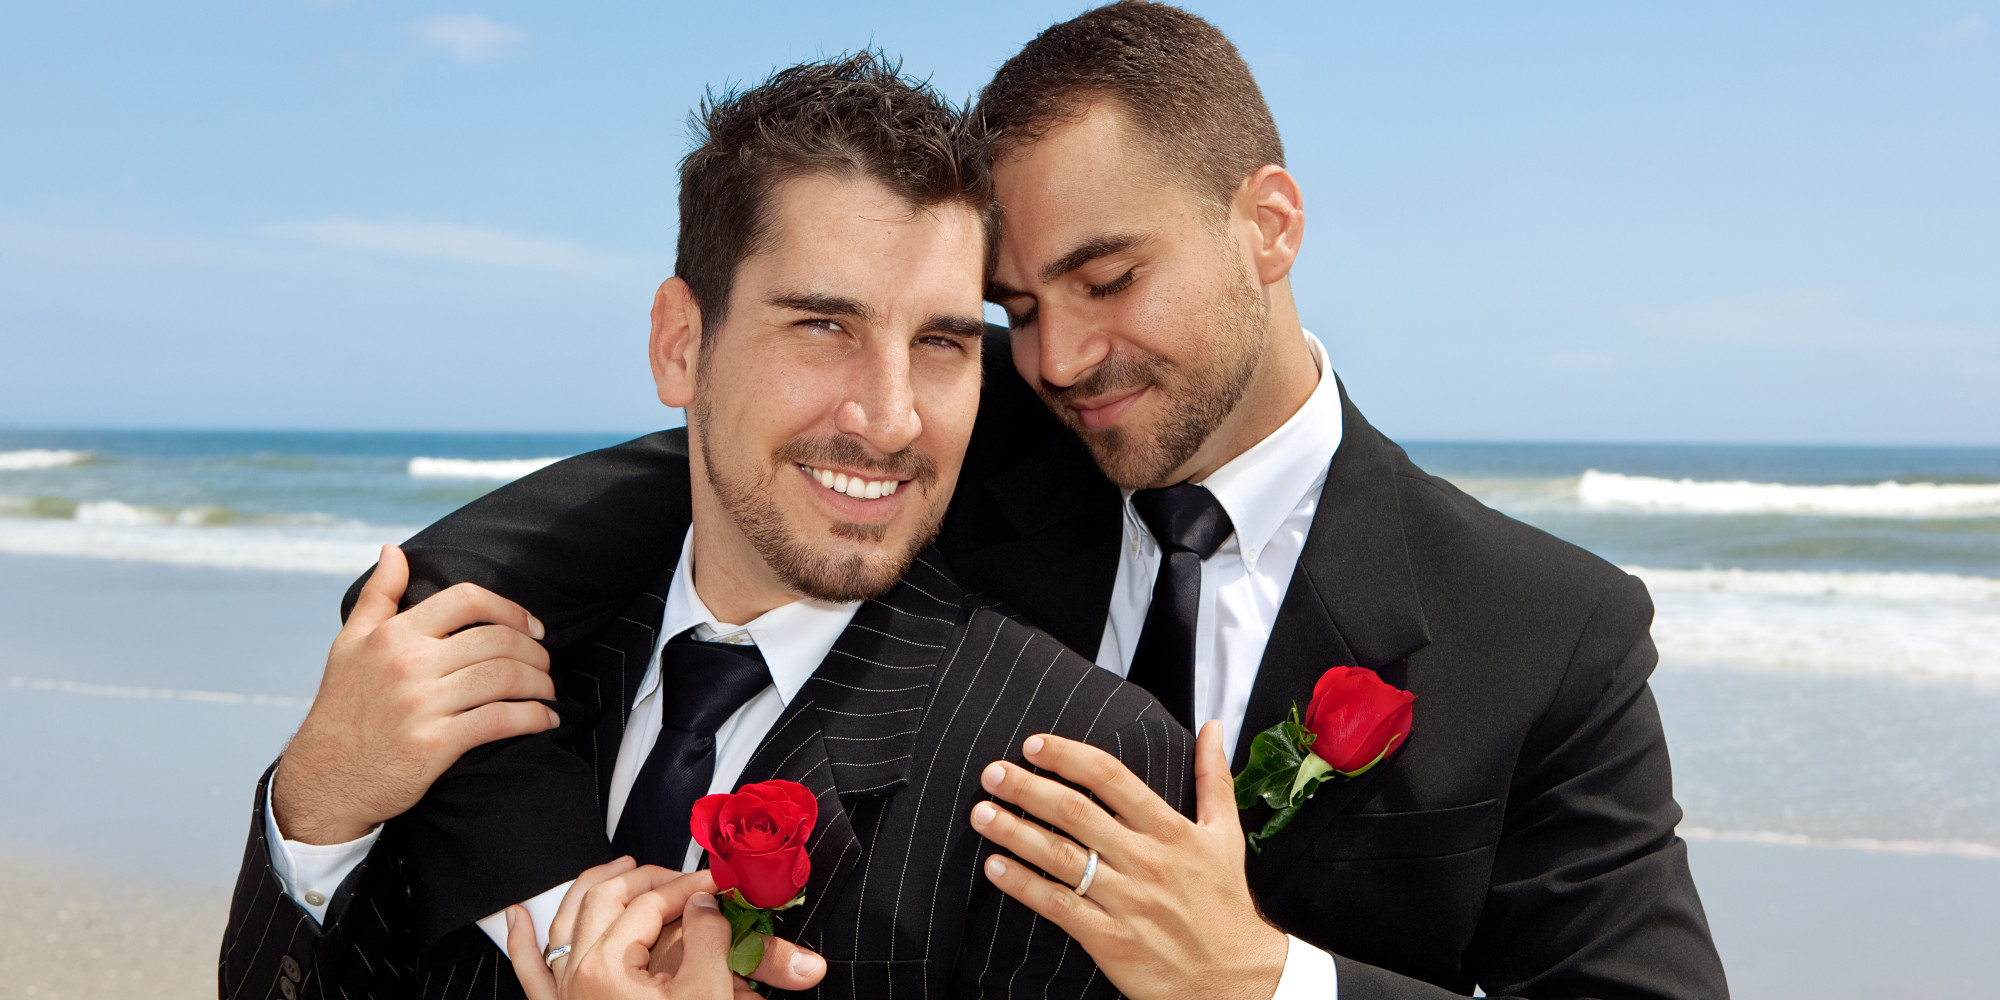 Nepal became the first country to authorize gay marriage.